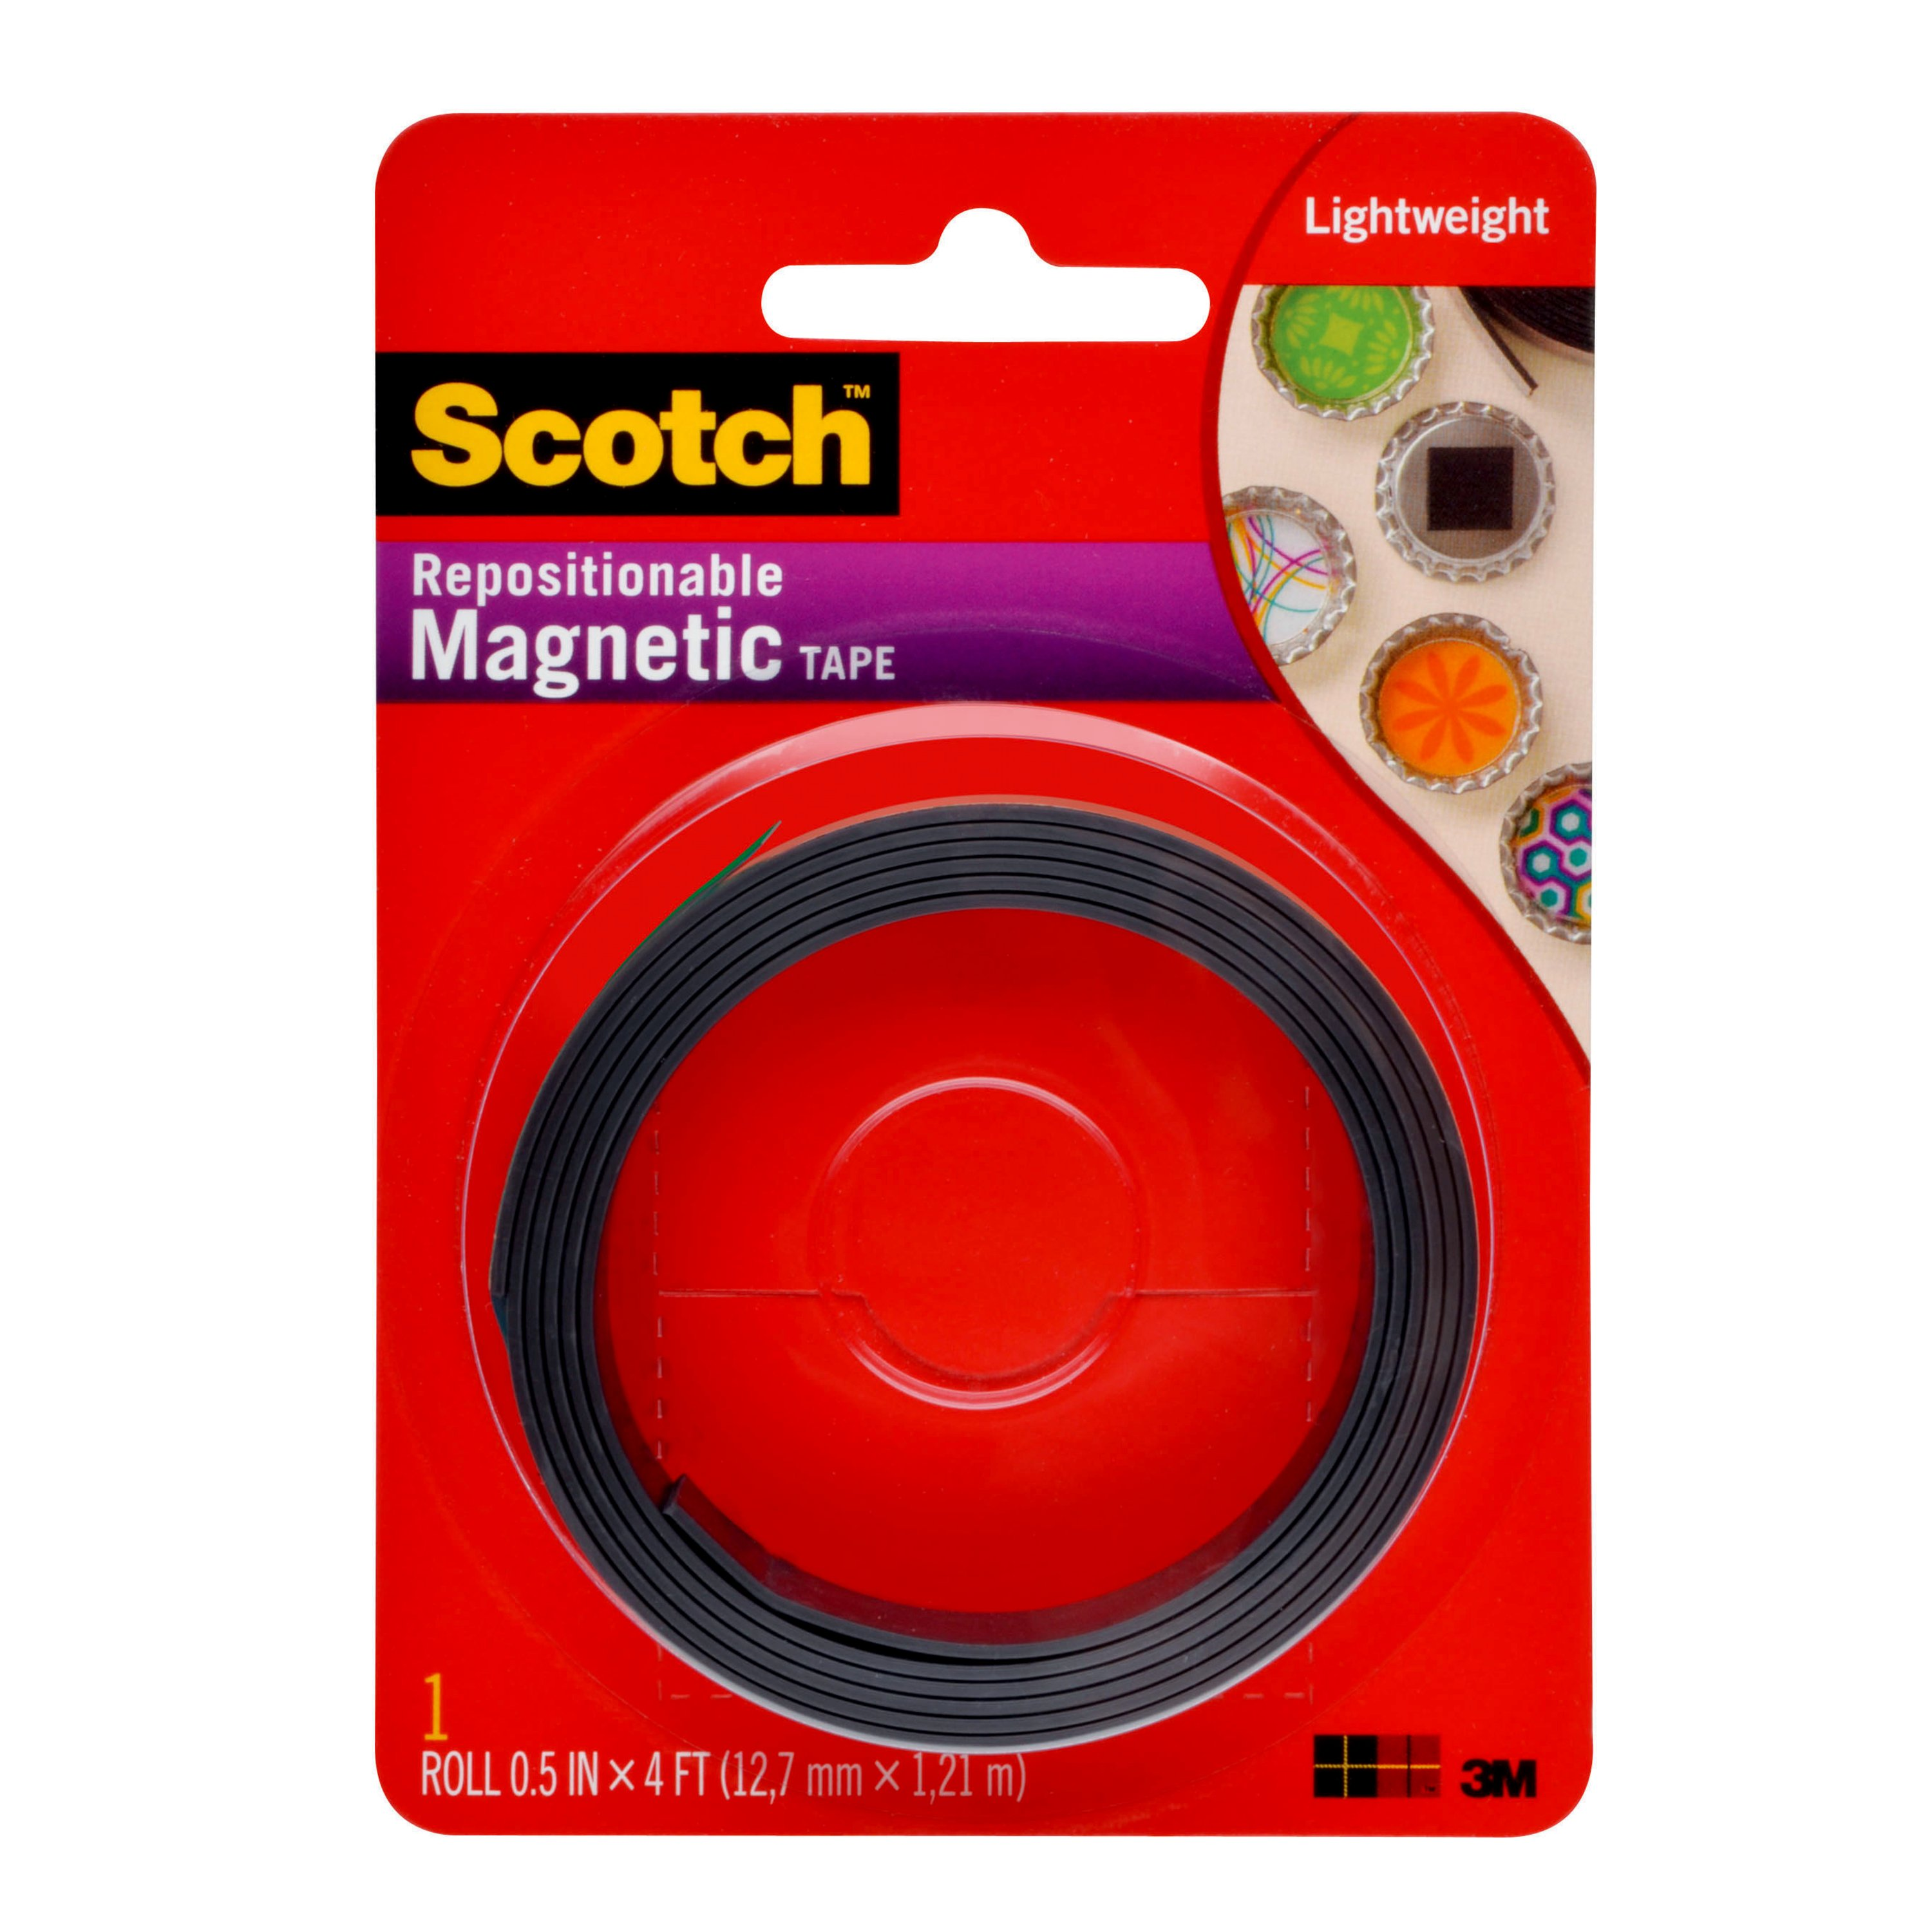 Scotch Repositionable Magnetic Tape, 1/2 in. x 4 ft., Black, 1 Roll/Pack